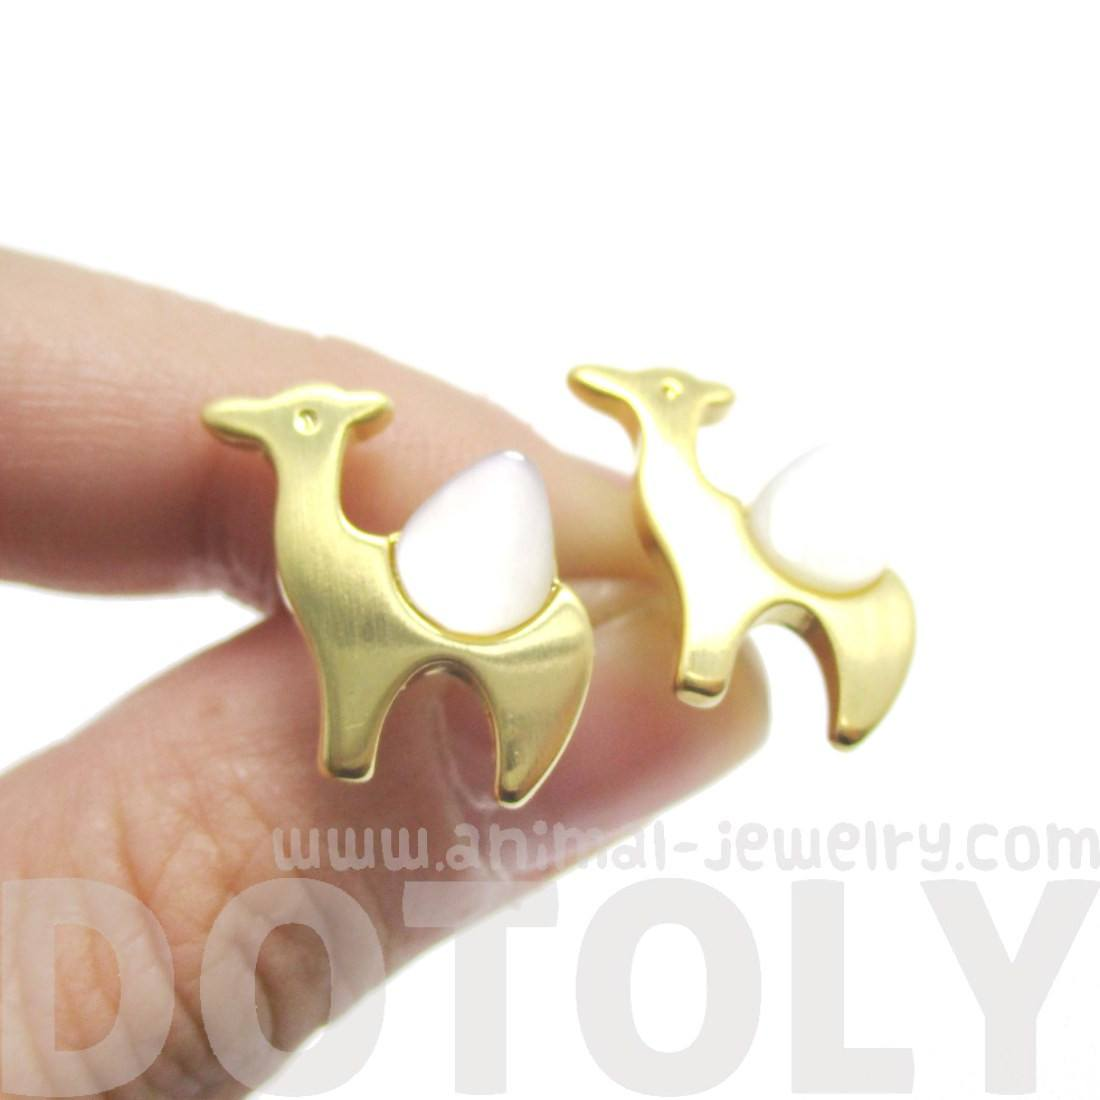 Camel Animal Themed Stud Earrings in Gold and Pearl